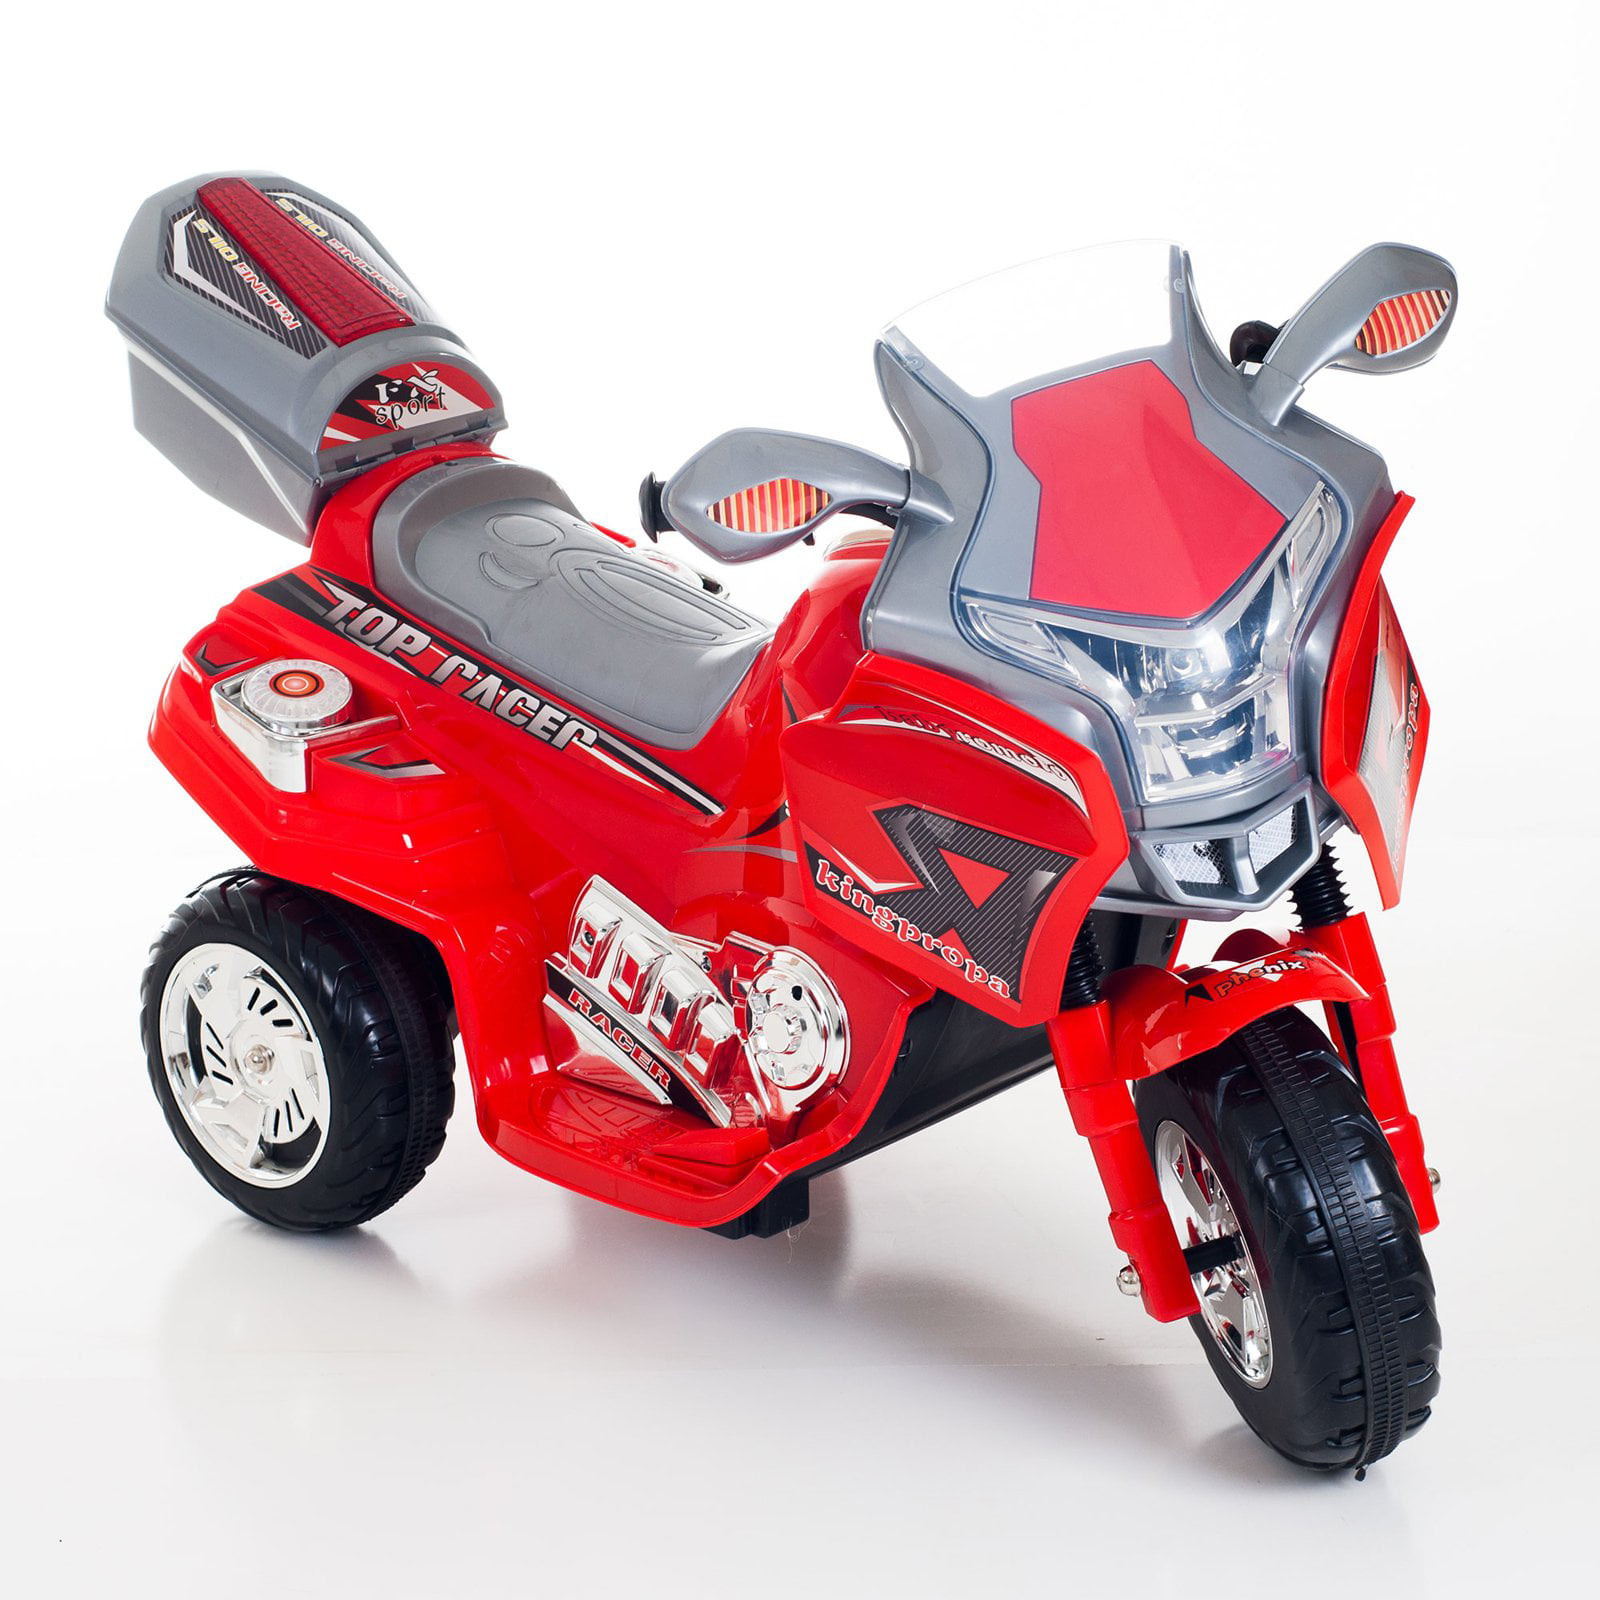 Chic Baby Disassembly Toy Model Motorbike Motorcycle for Kids Boy Girl Plastic